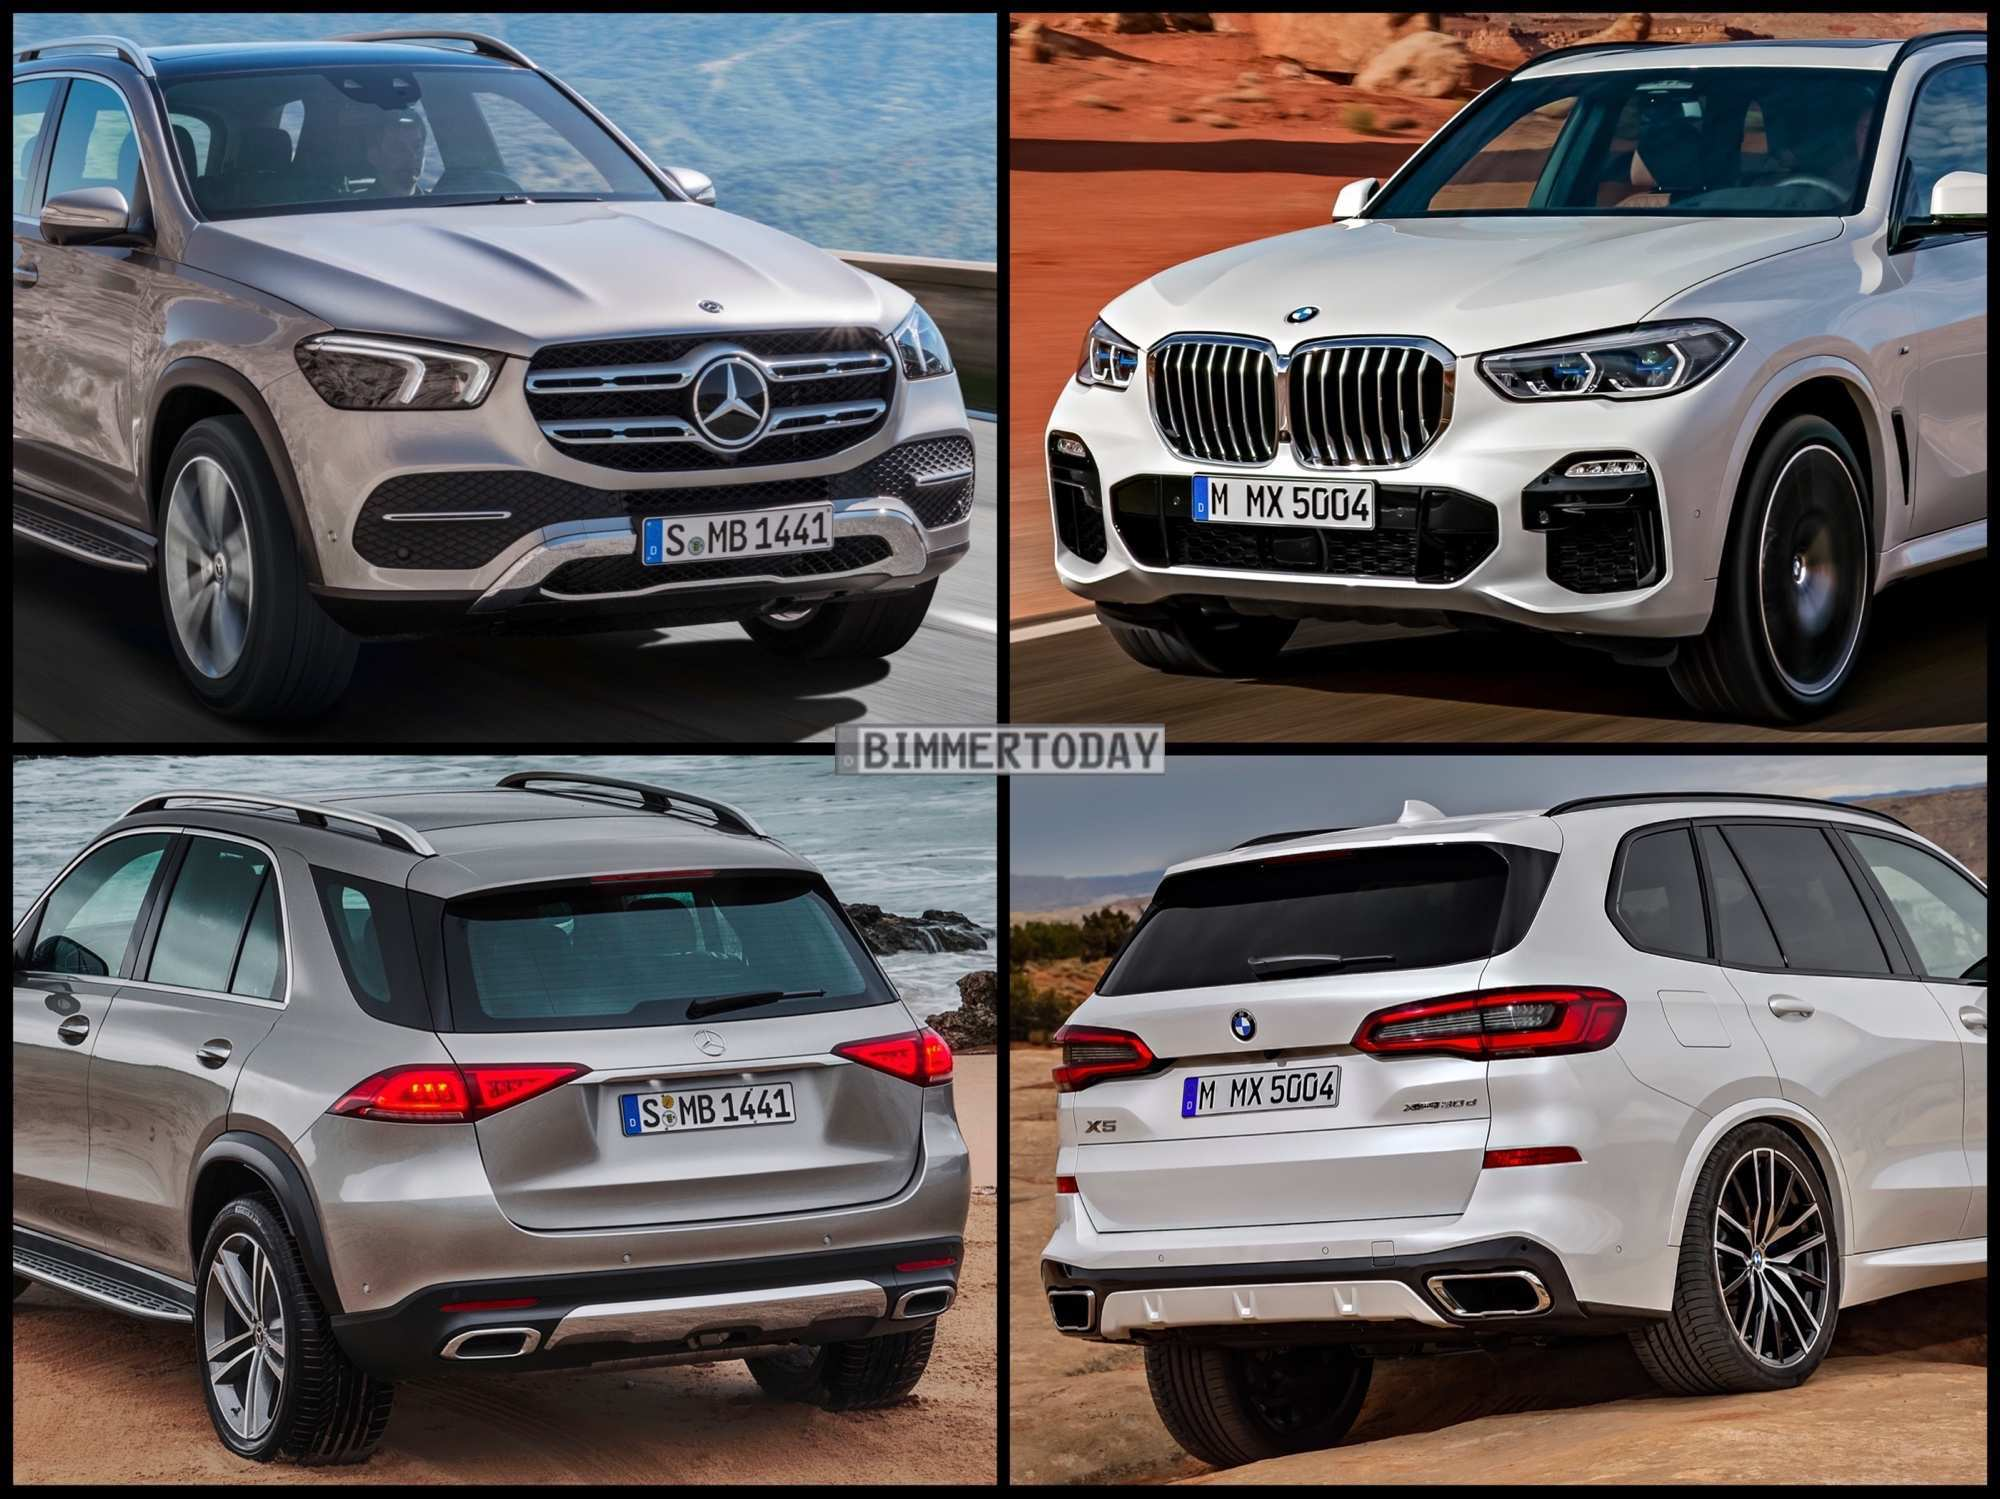 48 The 2020 Gle 350 Vs BMW X5 Overview with 2020 Gle 350 Vs BMW X5